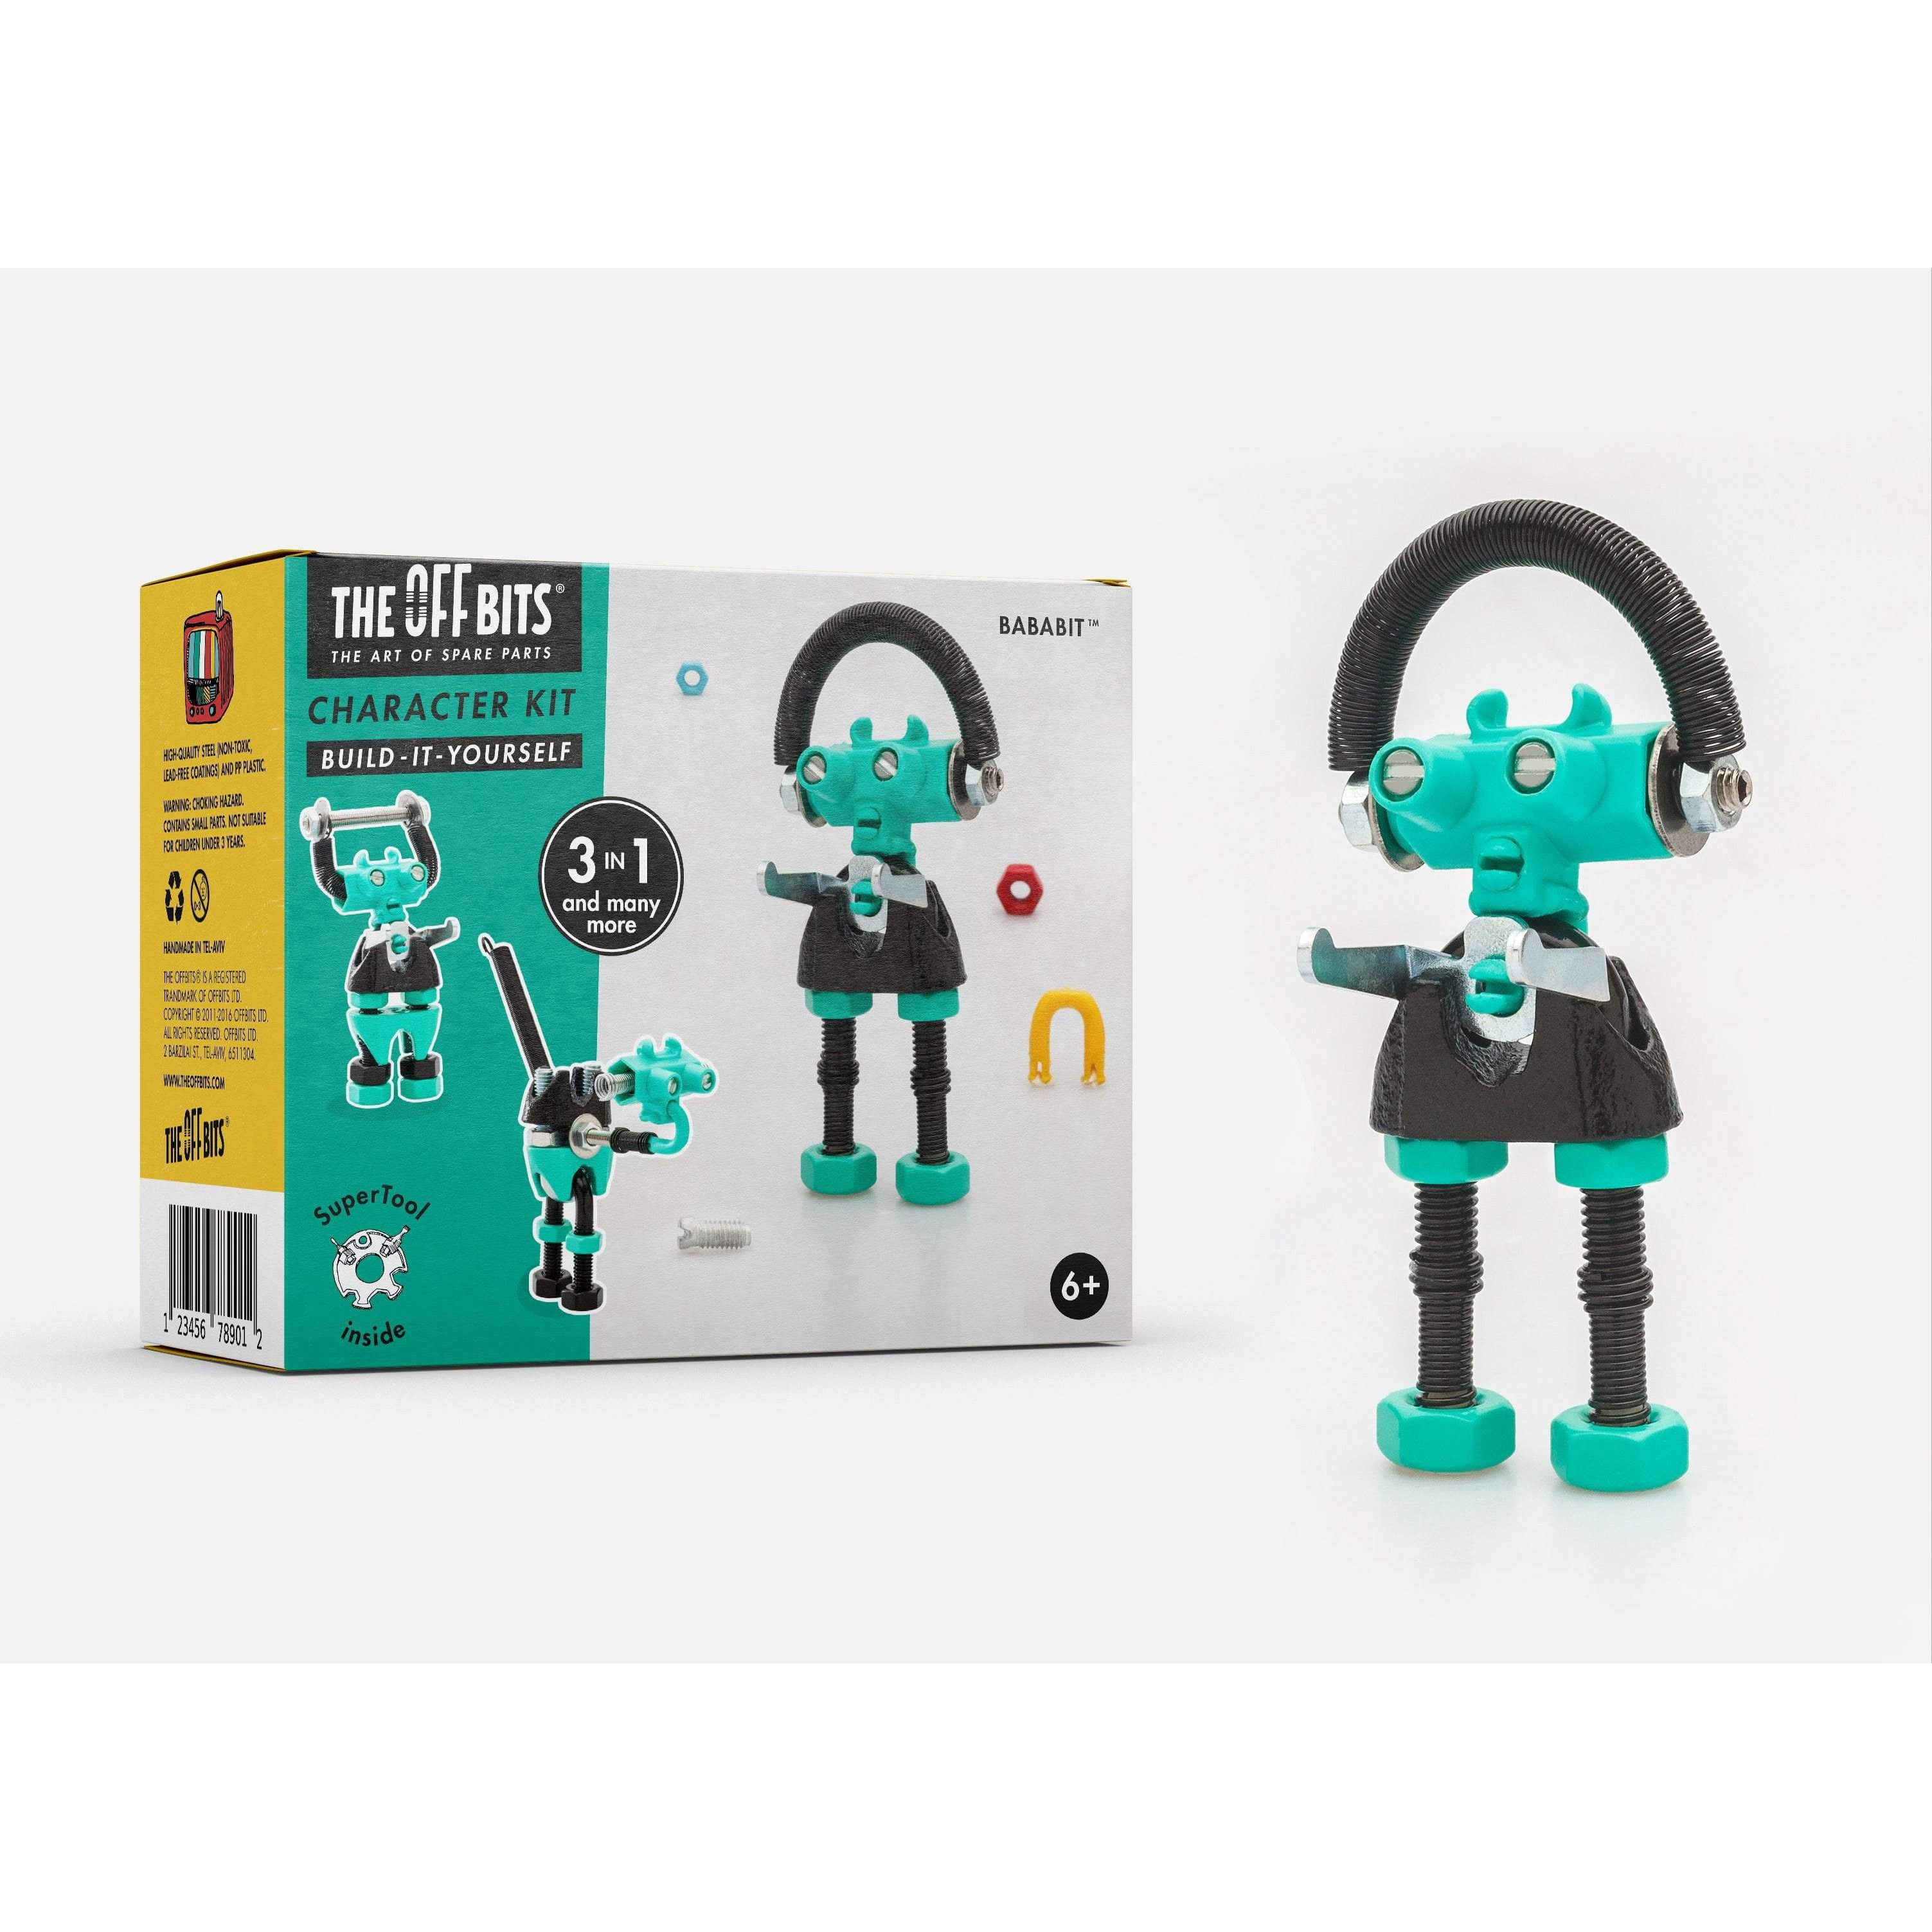 GREEN 3-in-1 Robot Kit from The OFFBITS